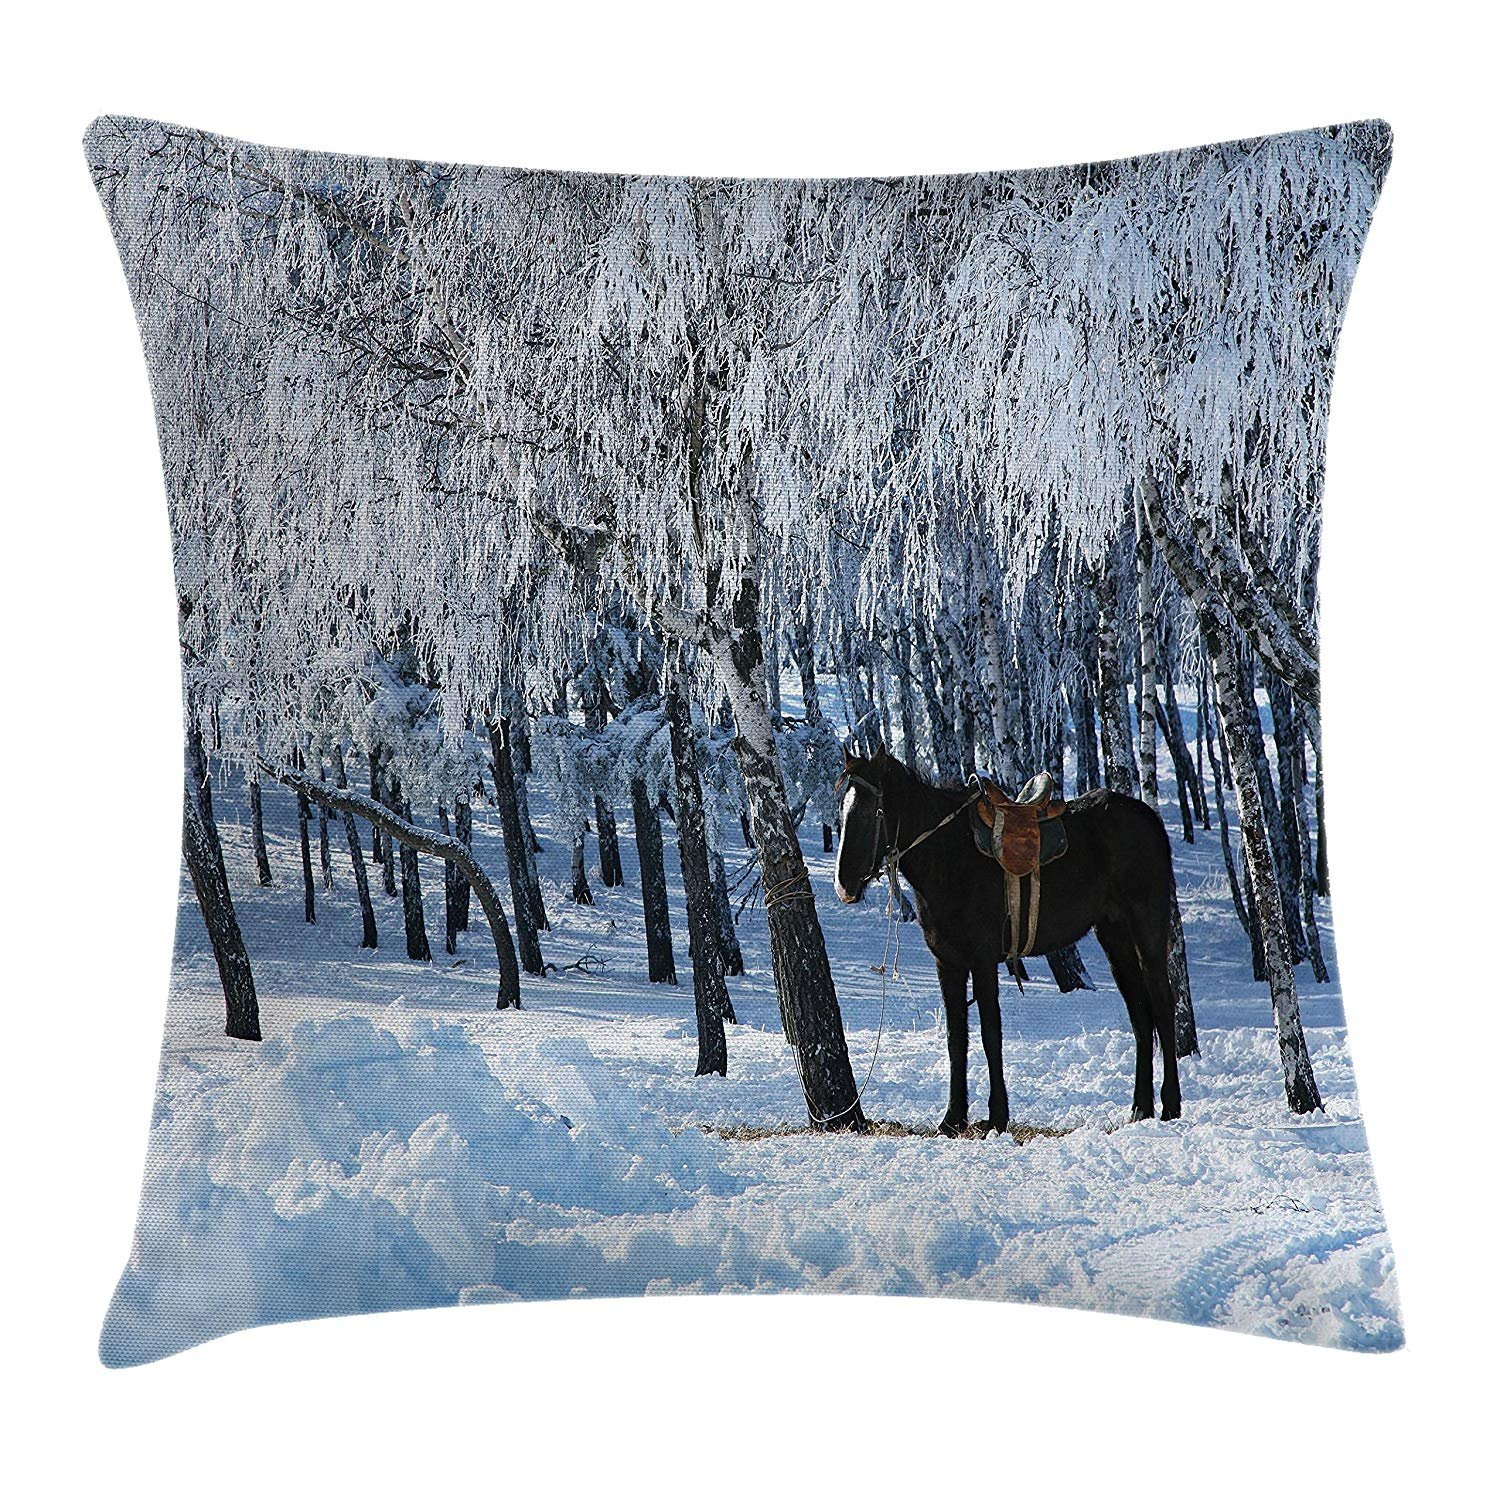 Queen Area Horse between Trees in Winter Forest Frozen Woods Icy Land Nature Picture Square Throw Pillow Covers Cushion Case for Sofa Bedroom Car 18x18 Inch, 18 X18 Inch, Brown White